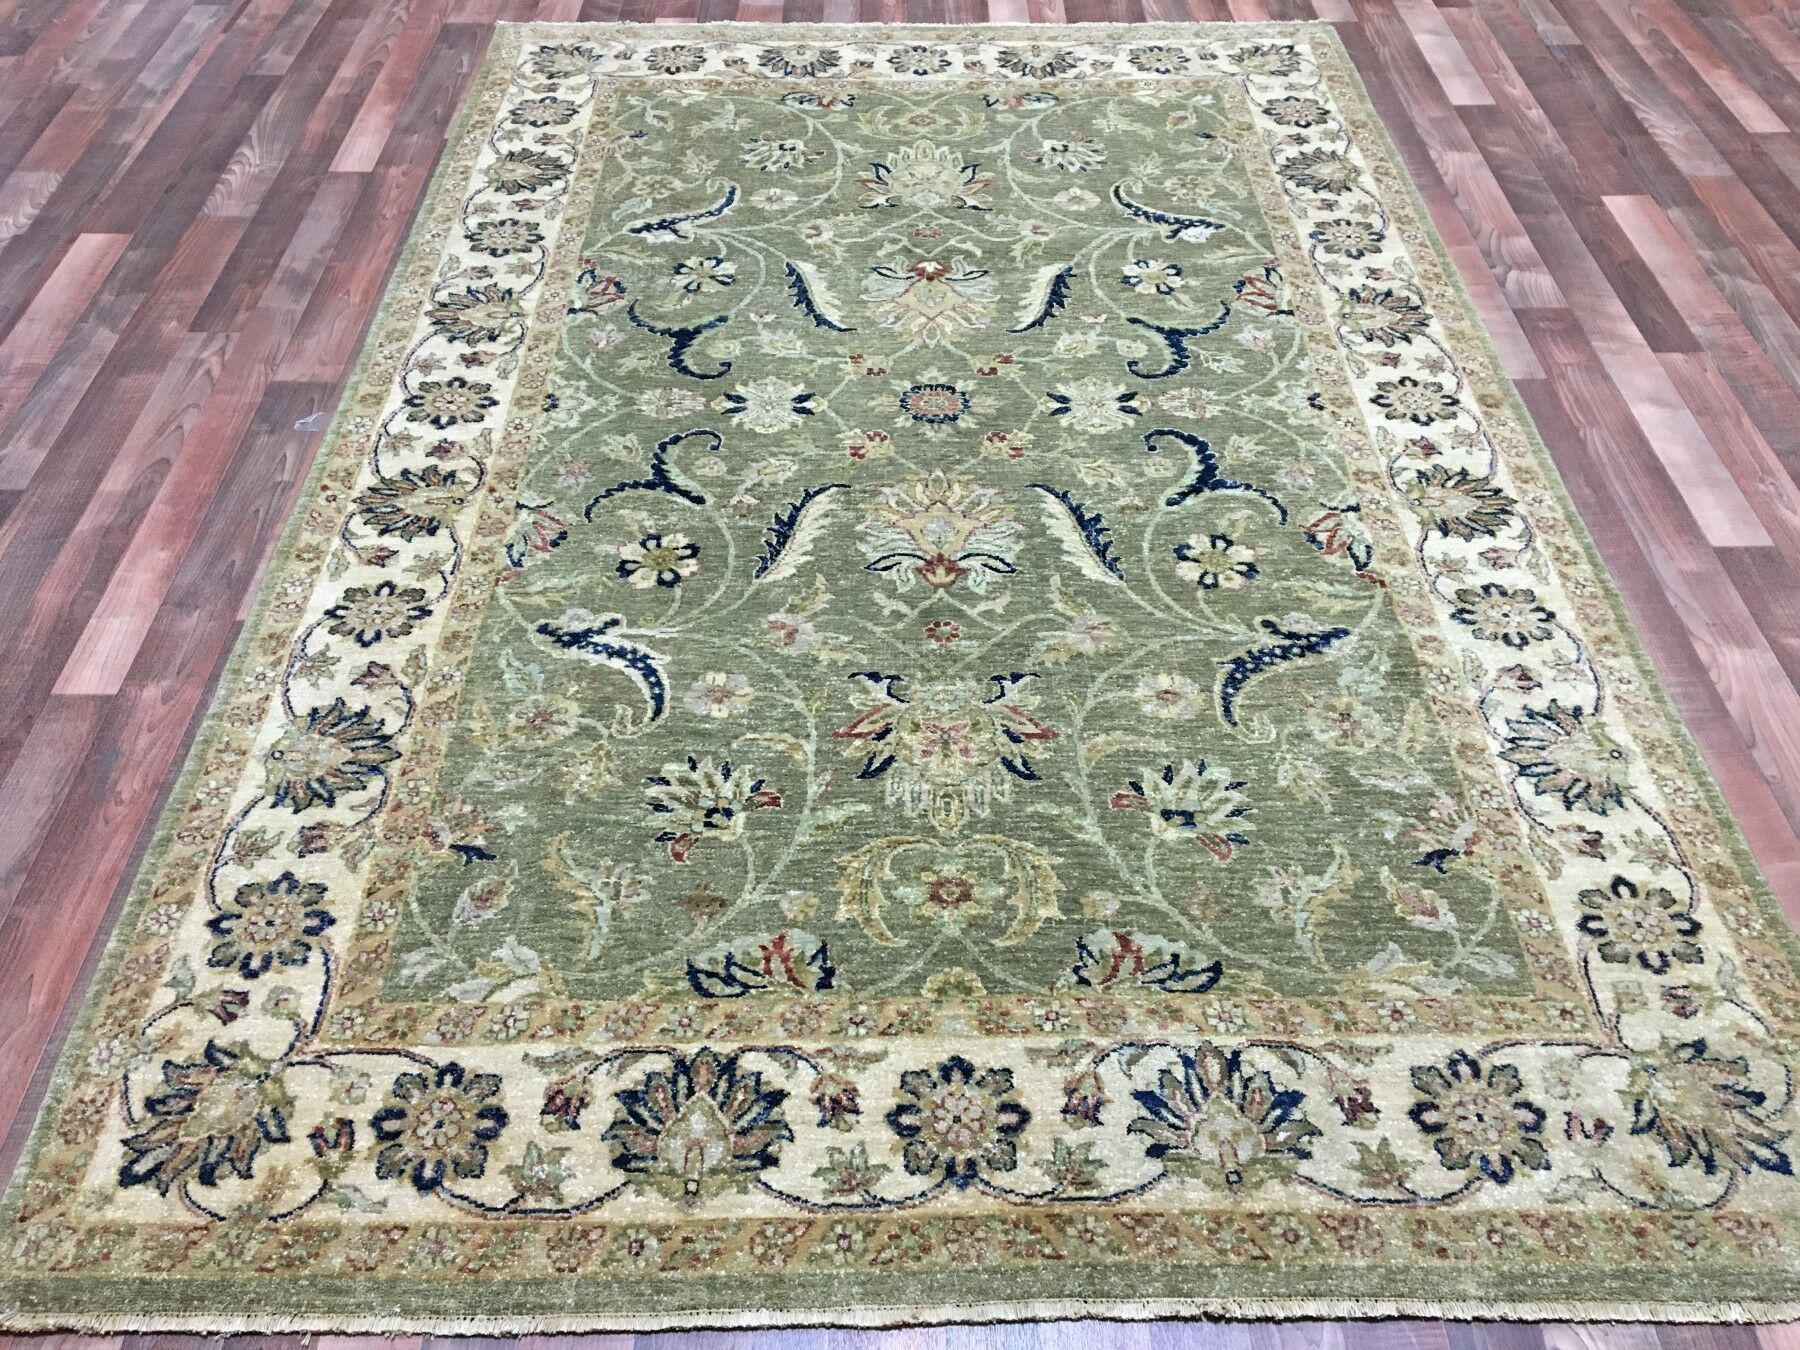 One-of-a-Kind Anjo Hand-Woven Wool Green/Beige/Blue Area Rug